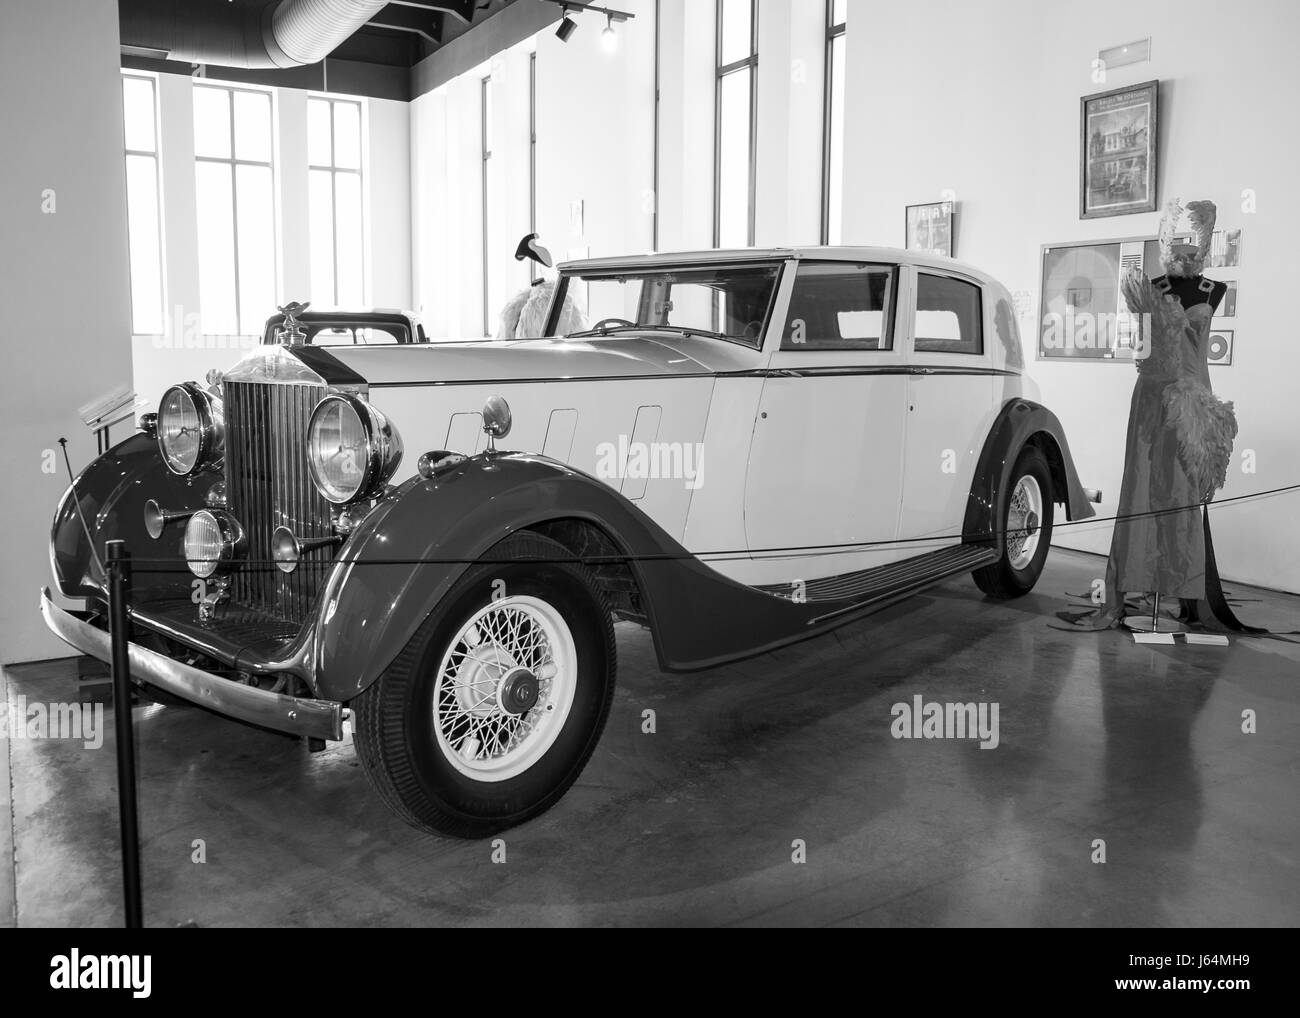 Rolls Royce Phantom III. Automobile museum of Málaga, Andalusia, Spain. - Stock Image